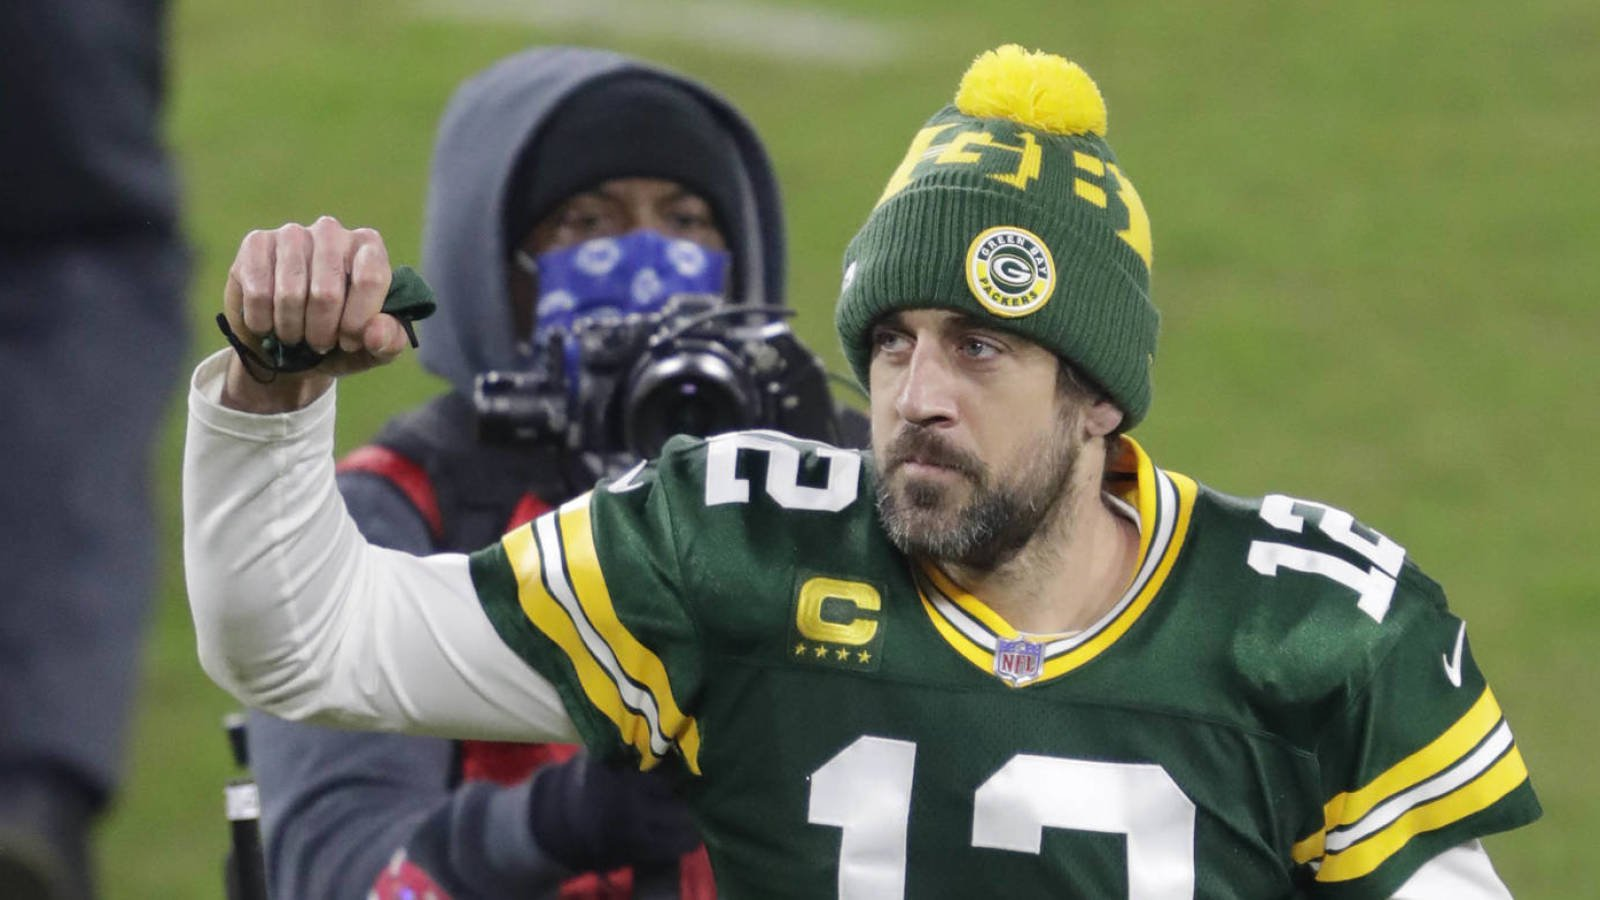 Jan 16, 2021; Green Bay, WI, USA;  Green Bay Packers quarterback Aaron Rodgers (12) celebrates a victory against the Los Angeles Rams during their NFL divisional playoff game Saturday, January 16, 2021, at Lambeau Field in Green Bay, Wis.  Mandatory Credit: Dan Powers-USA TODAY NETWORK